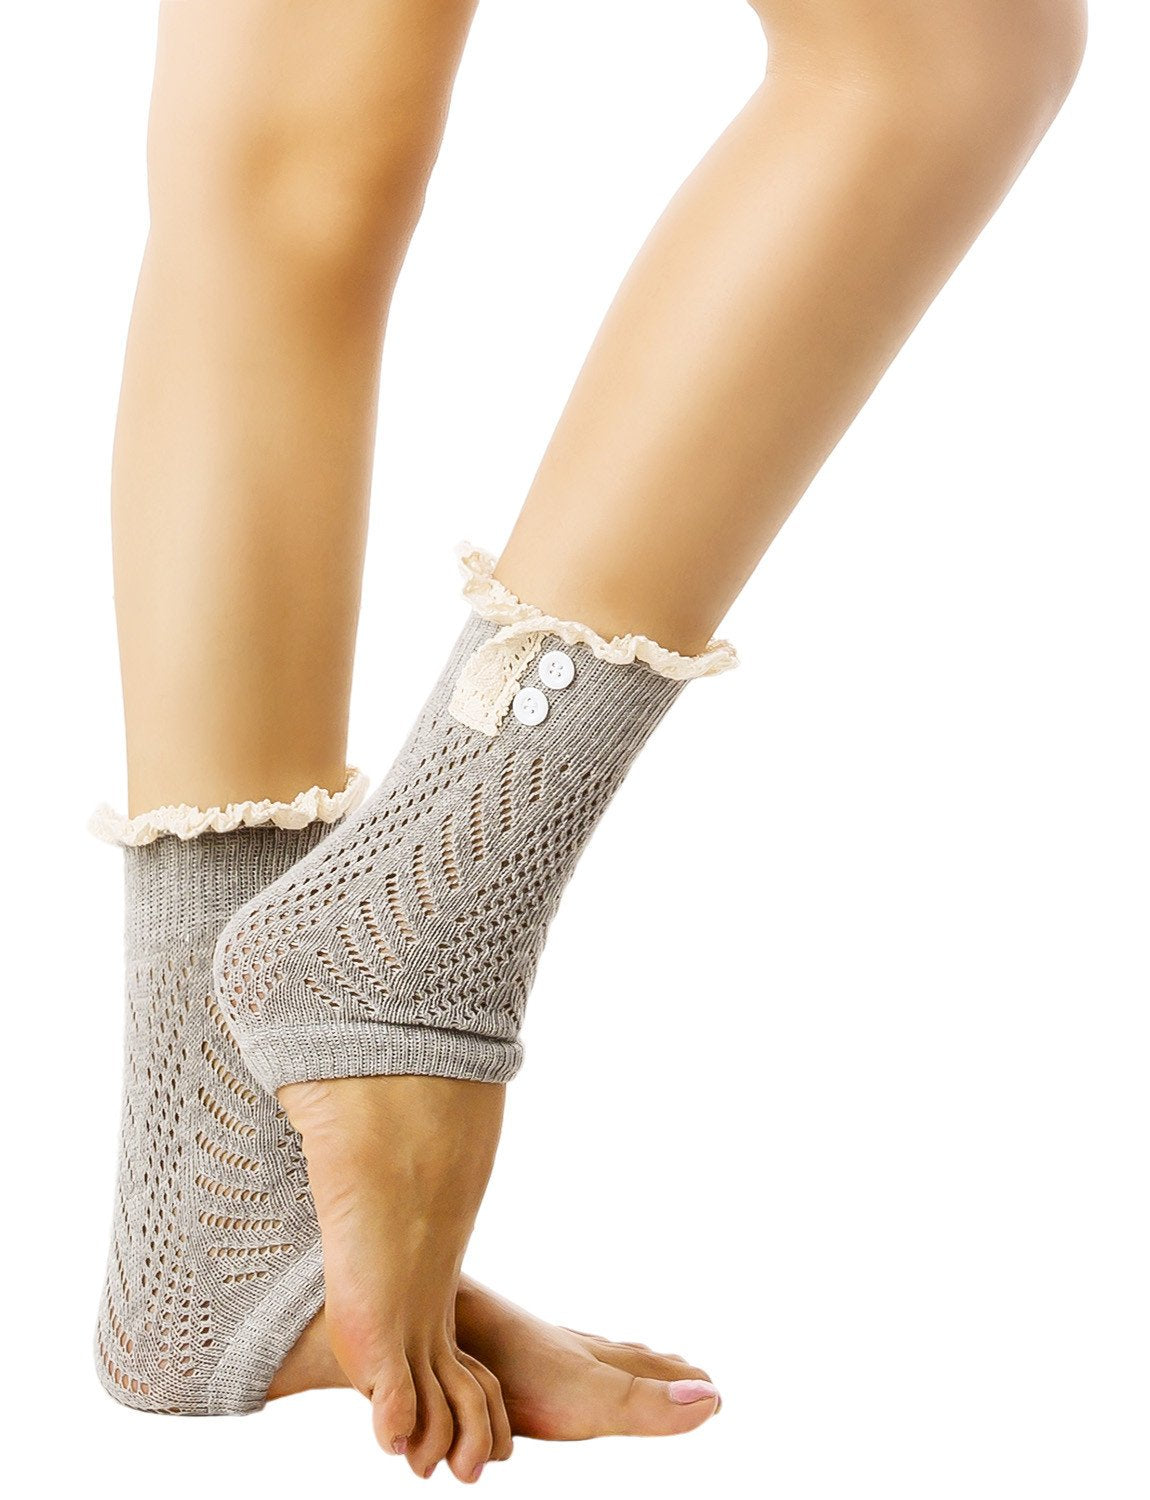 Women's Knitting Buttoned Stylish Warm Eyelet Lace Cuff Ankle Leg Warmers, Size: One Size, Light Coo